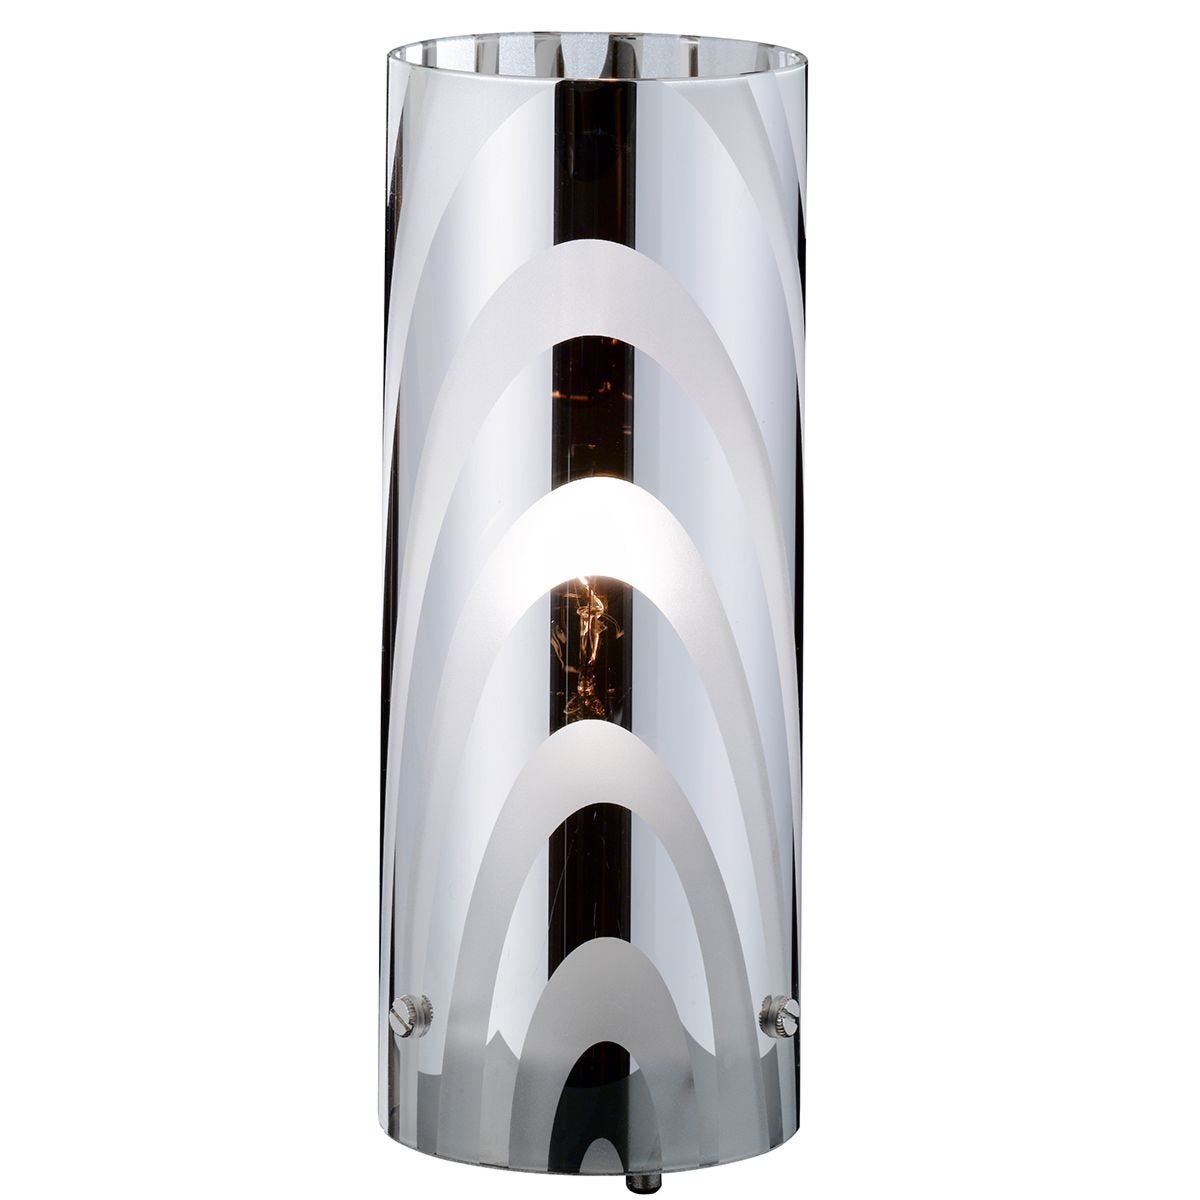 Action Collage Table Lamp - Nickel Matt Finished